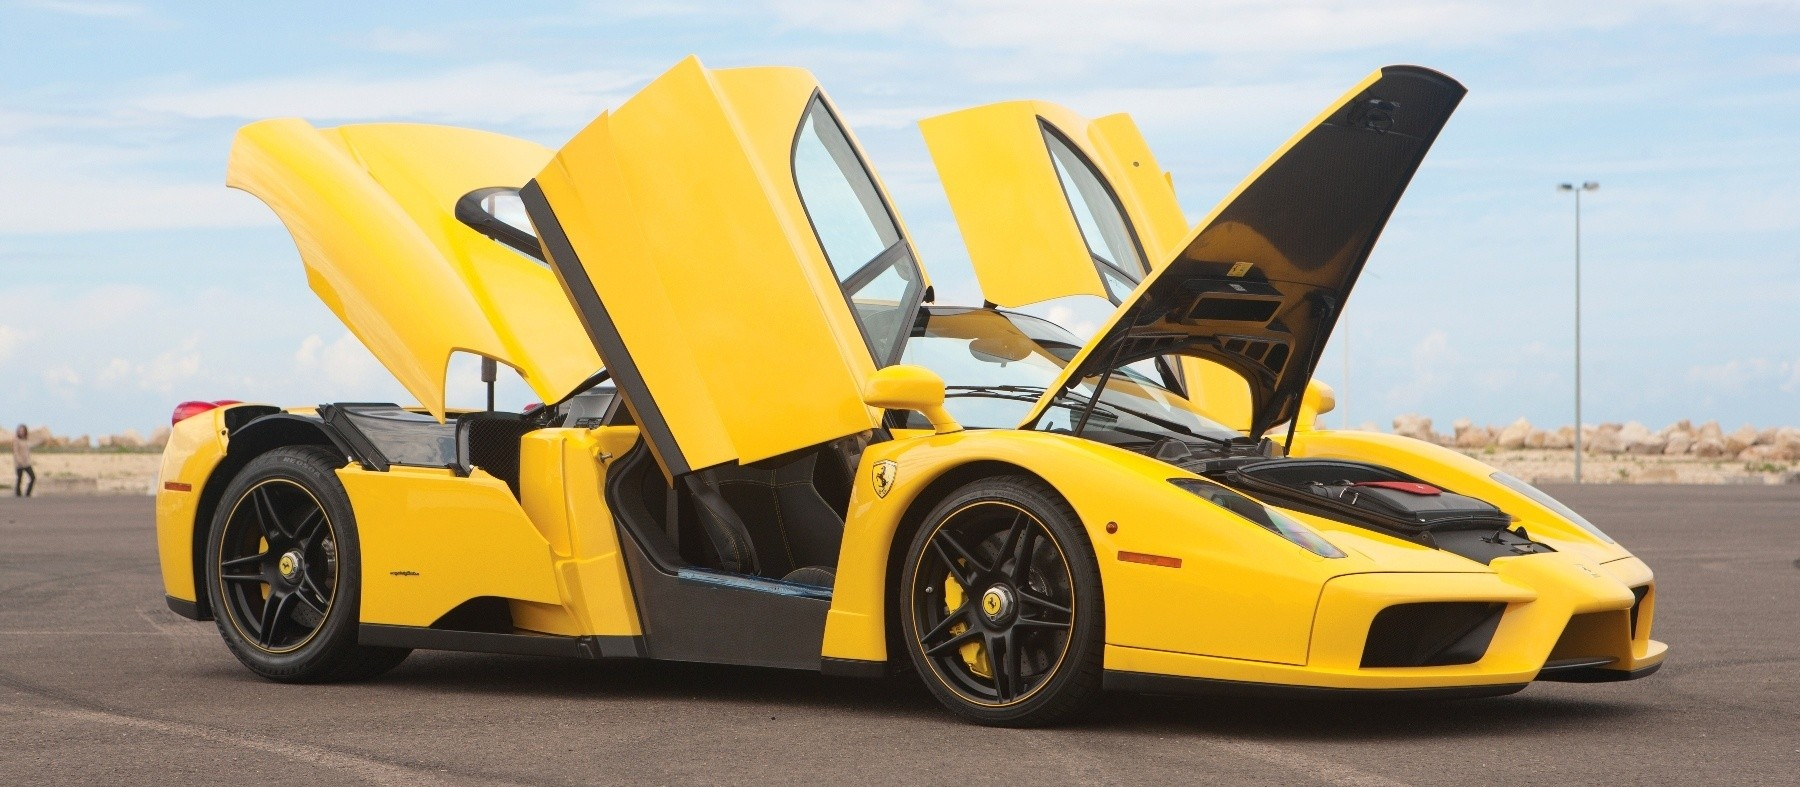 rm monaco 2014 highlights 2003 ferrari enzo in yellow over black 18 - Ferrari 2014 Yellow